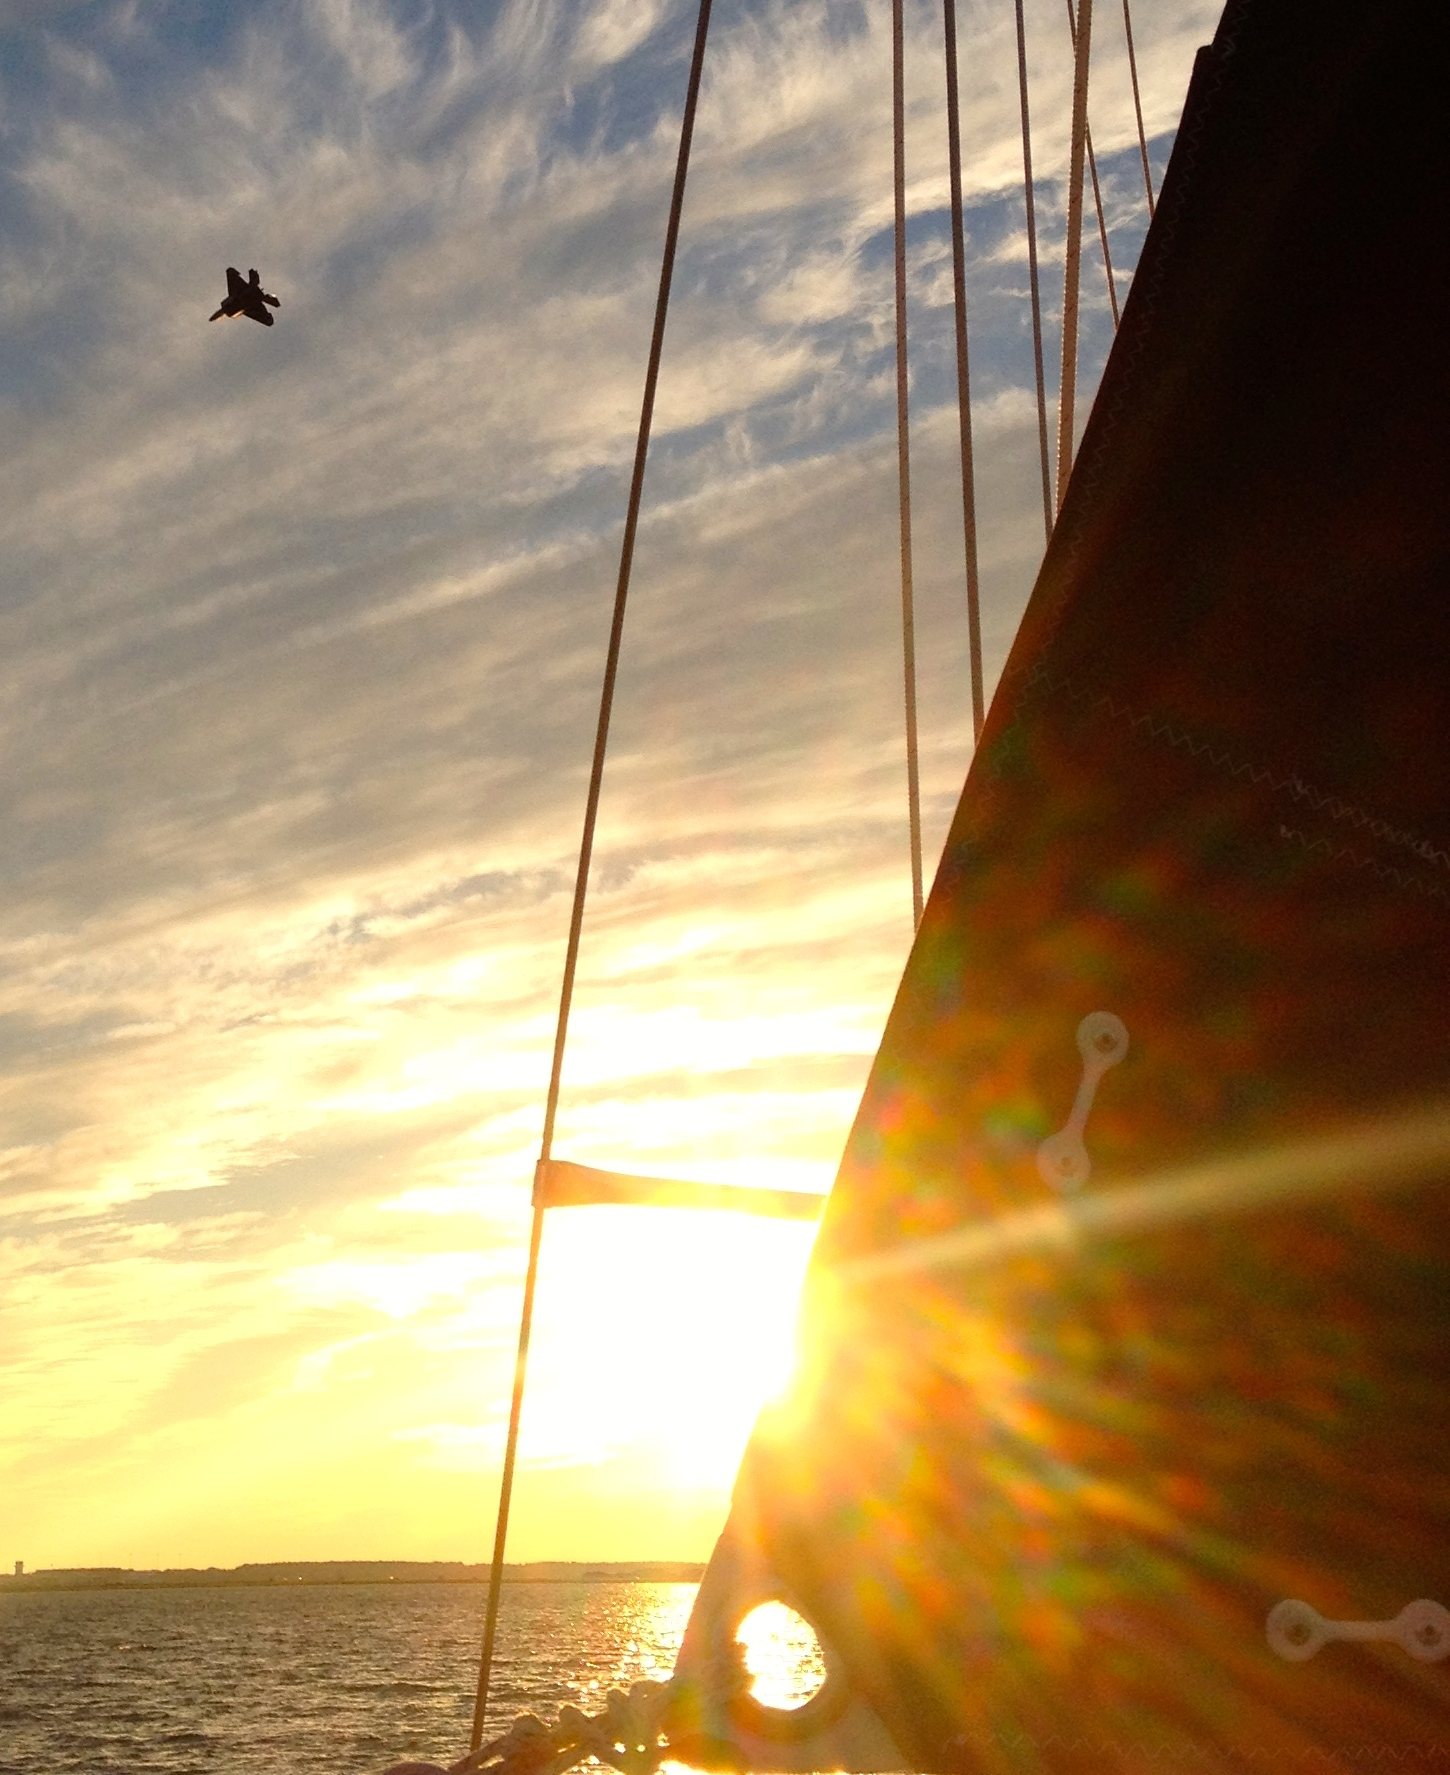 The trailing edge of Peregrinus' new mainsail and a screaming F22 above. 4:24PM, 18 November 2014, iPhone 4S.